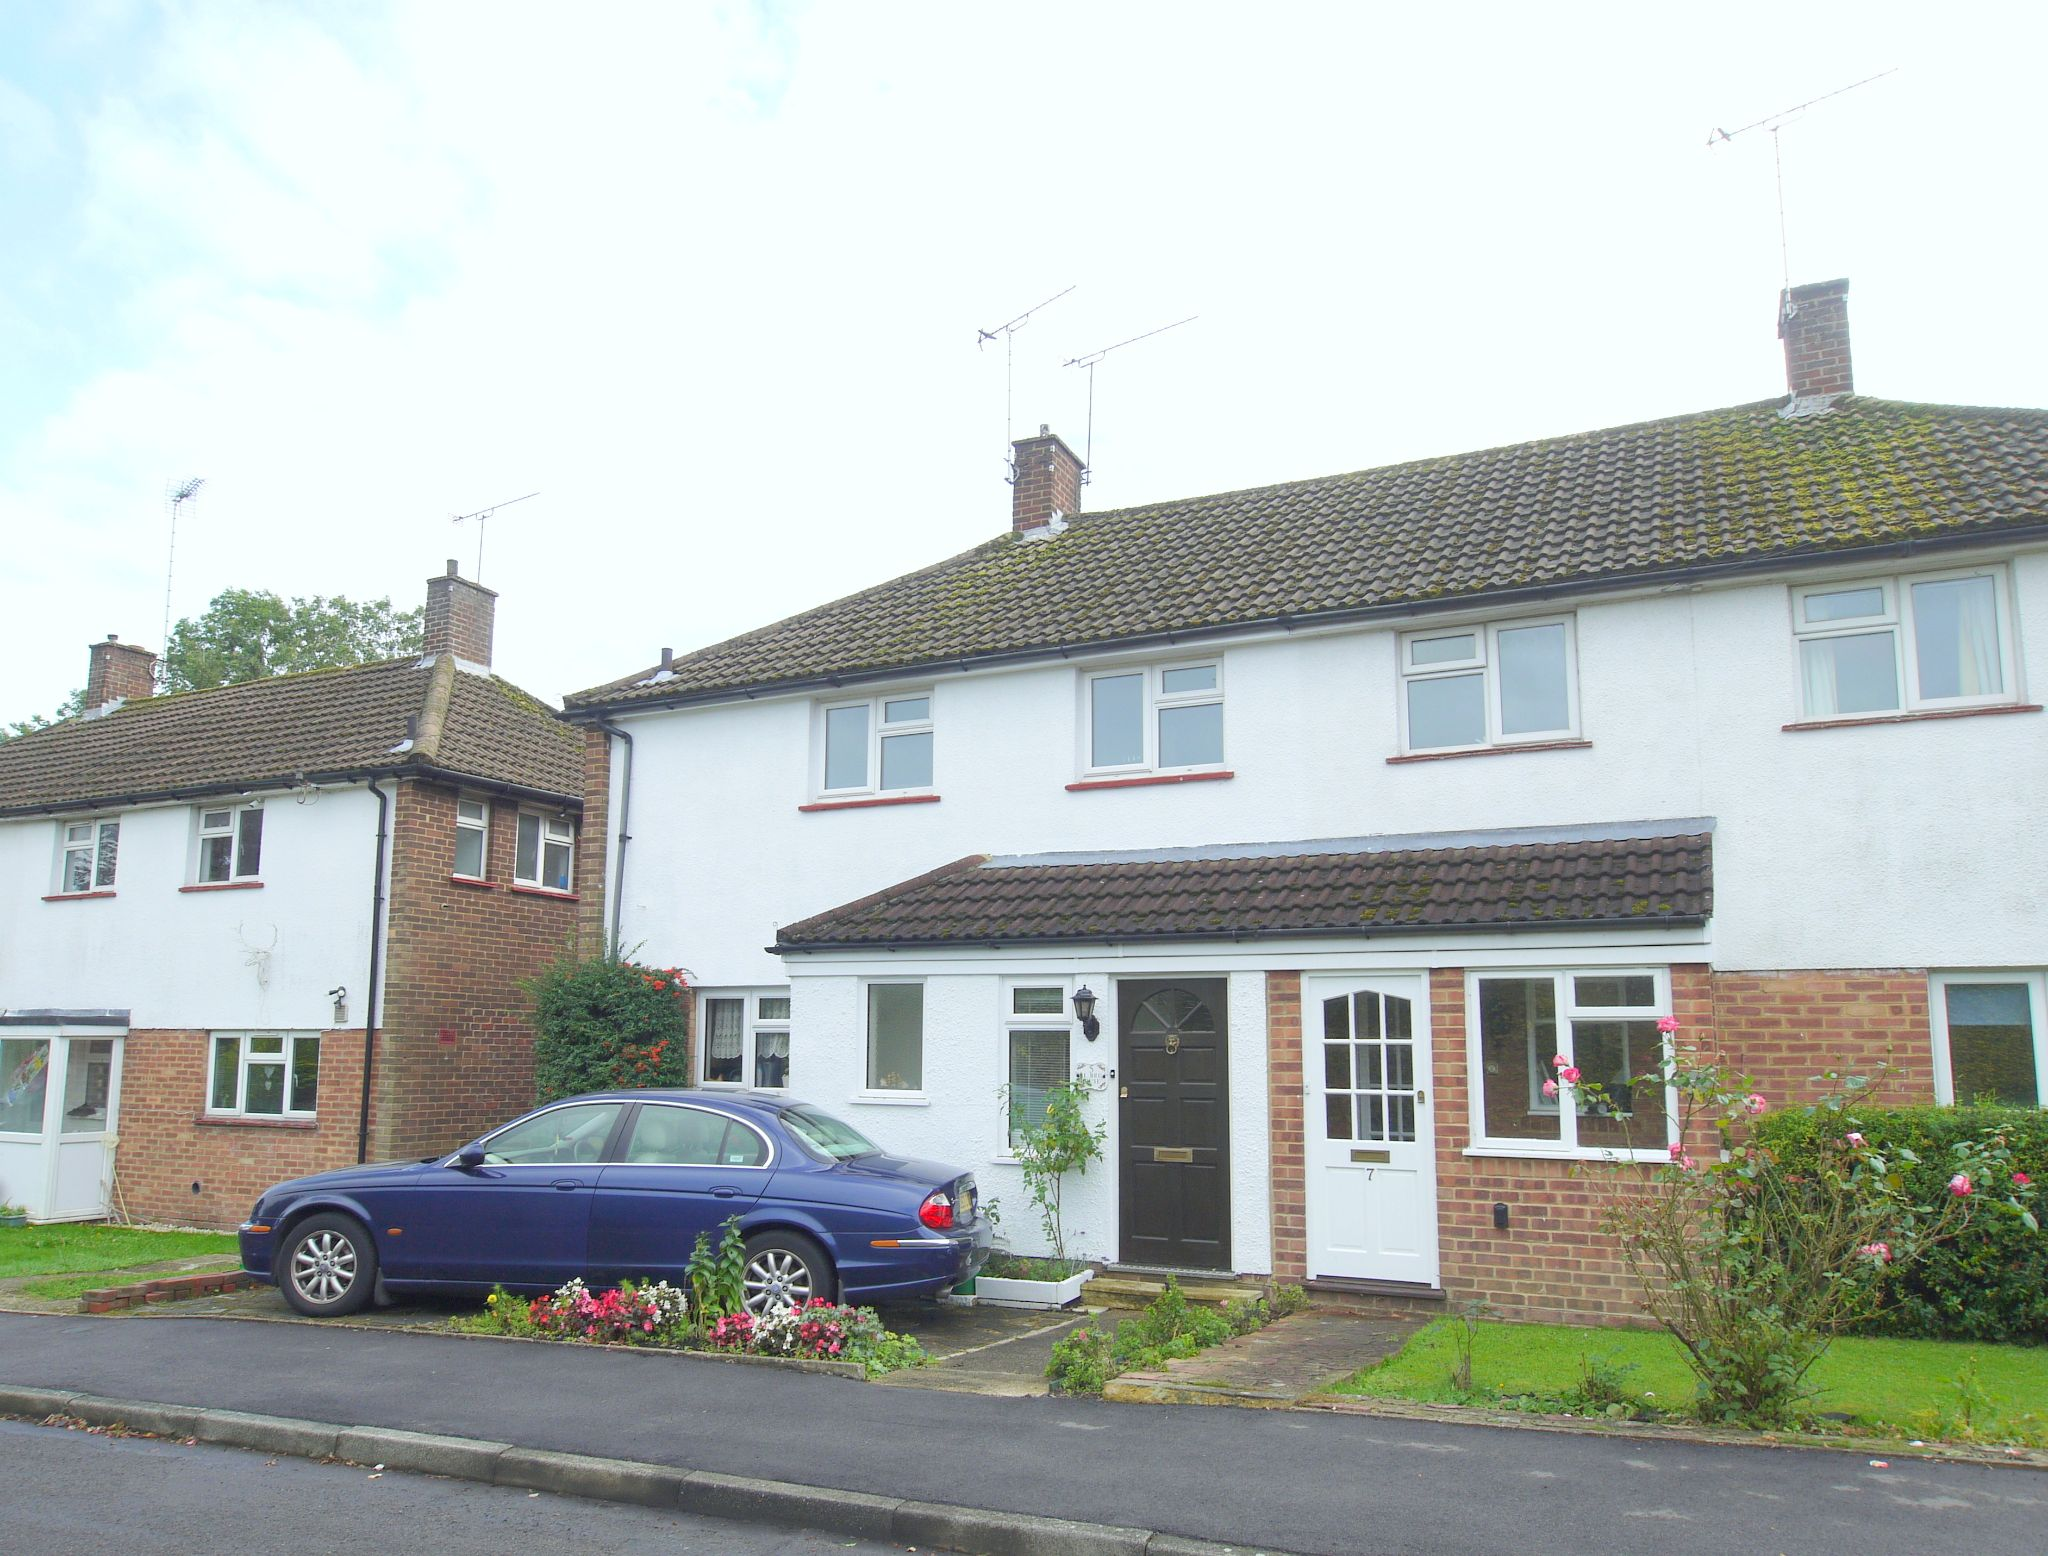 3 bedroom semi-detached house Sold in Sevenoaks - Photograph 1